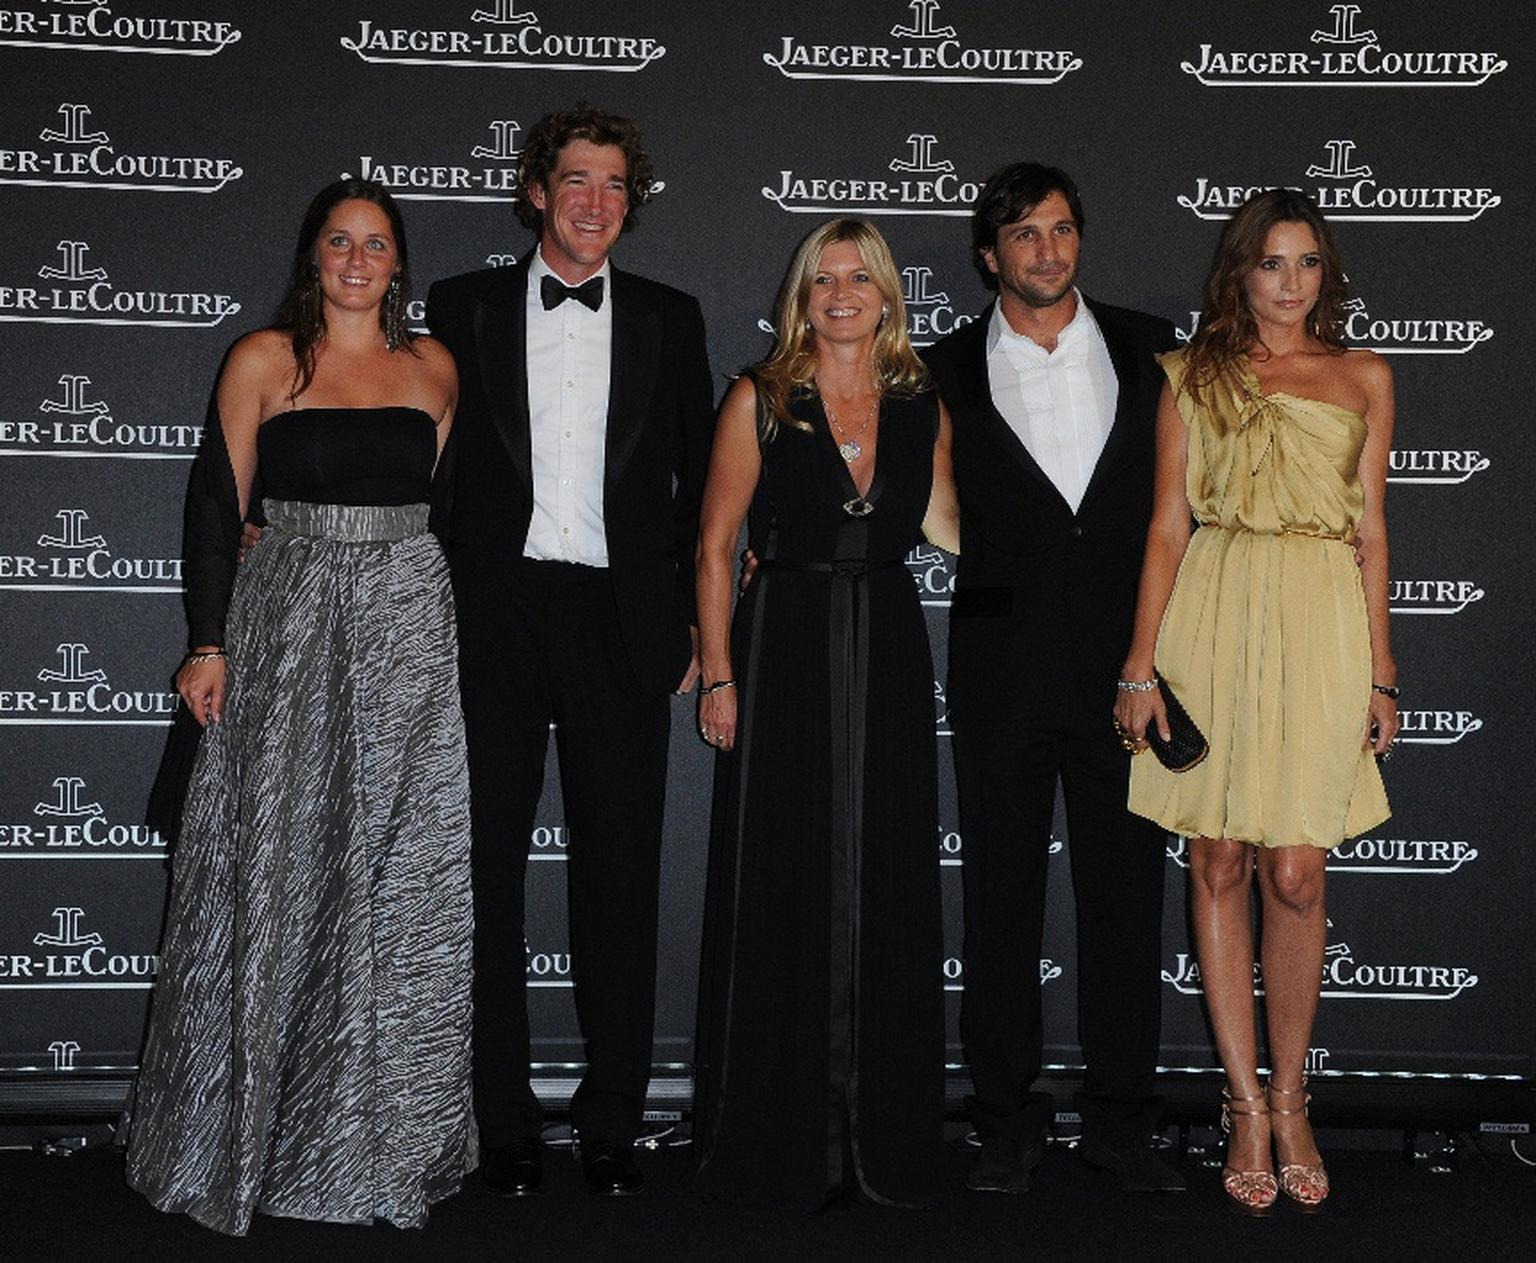 JLC-Luke-Tomlinson-with-his-fiancee,marchioness-of-Milford-Haven,-Eduardo-Novillo-Astrada-and-Astrid-Munoz-at-Jaeger-LeCoultre-Rendez-Vous-in-Venice.jpg